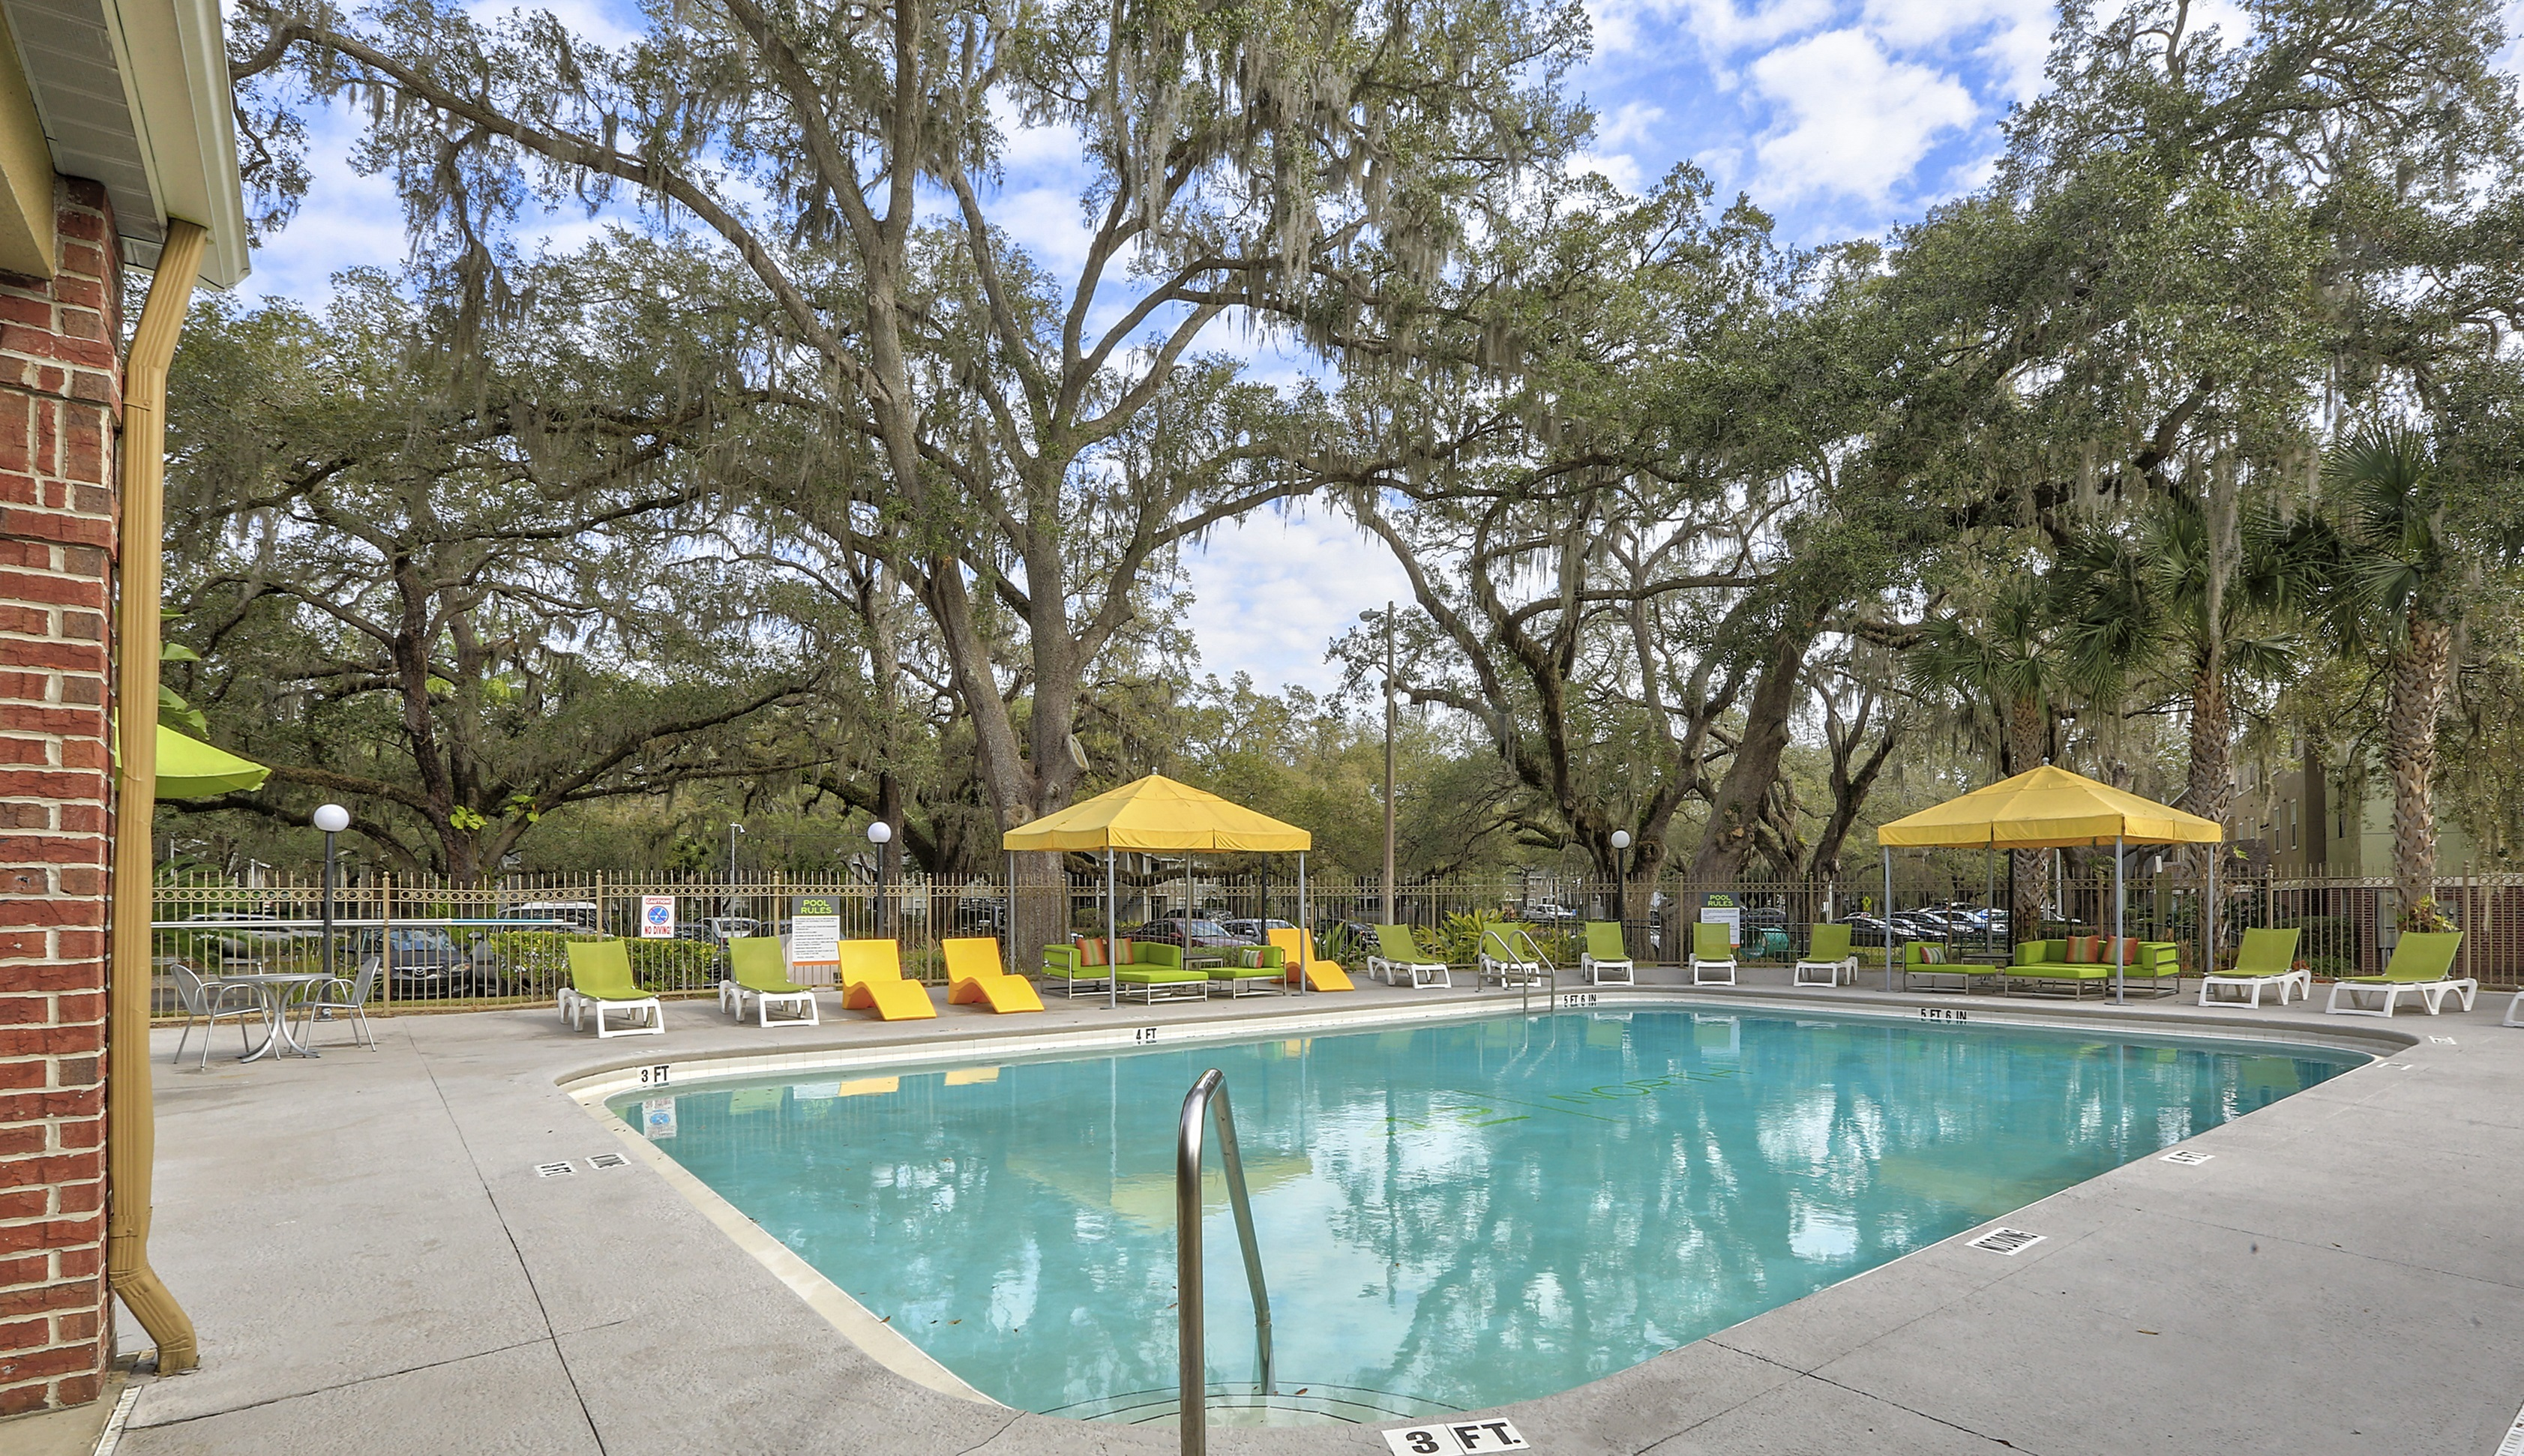 42 North Apartments outdoor pool with lounge seating